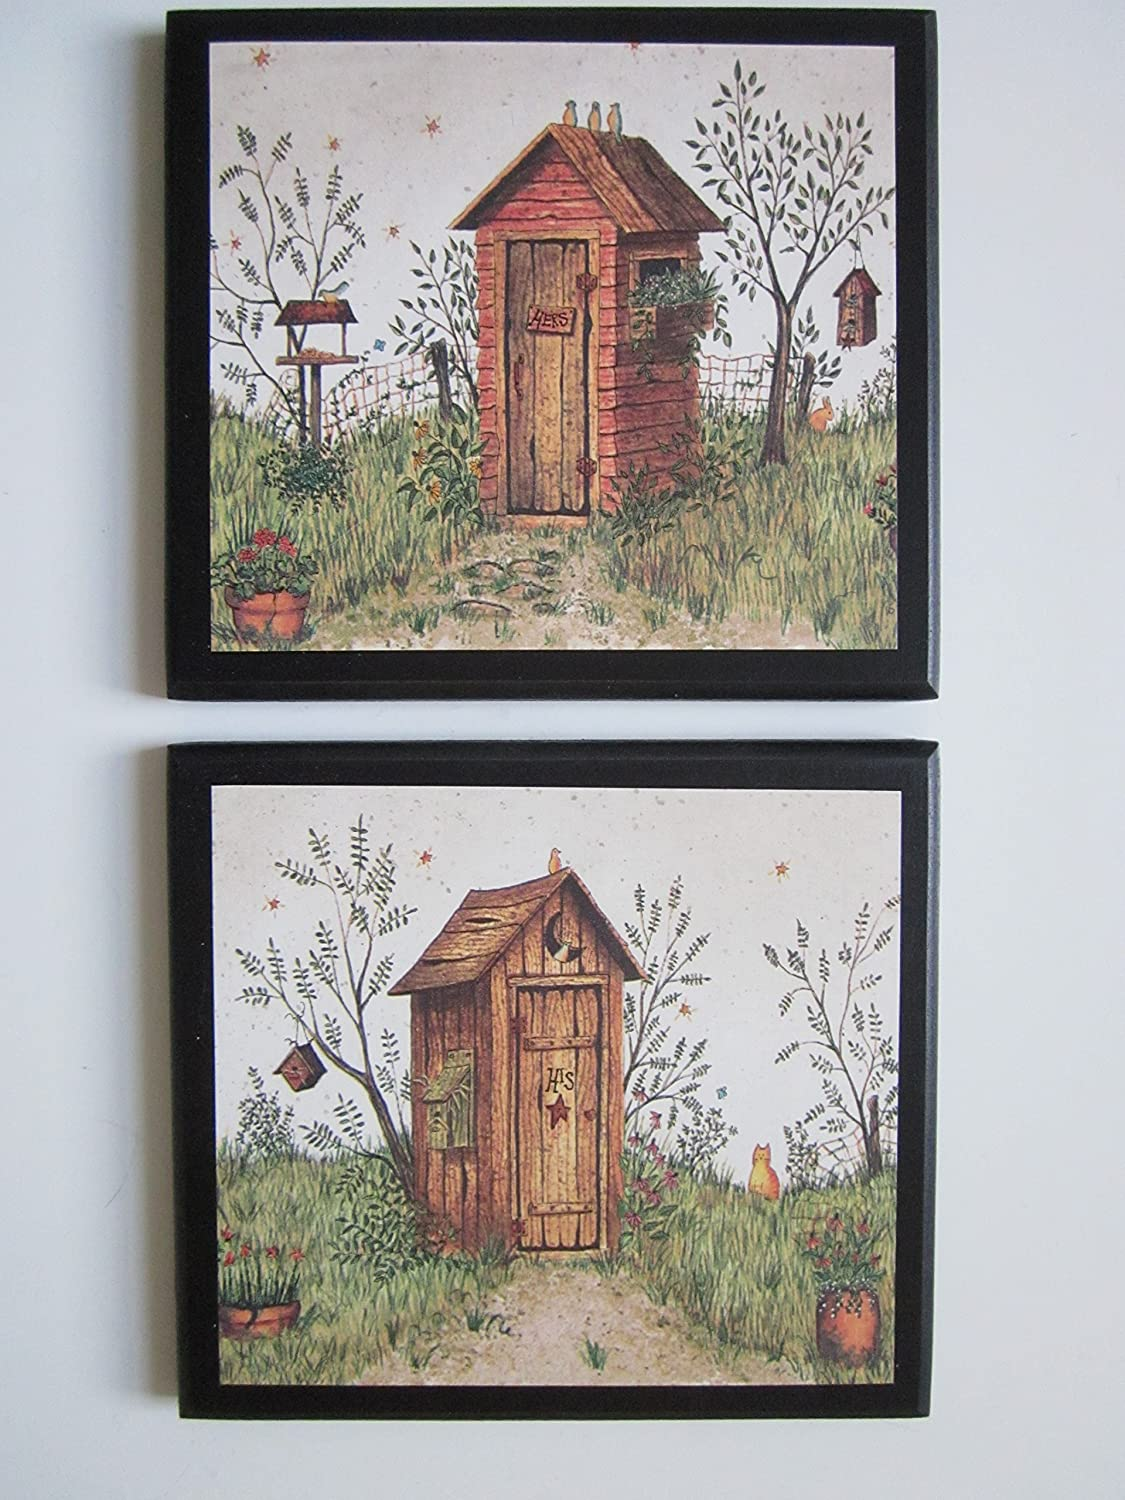 Amazon.com: Outhouse Bathroom Plaques, His & Hers, 2 Piece Set ...